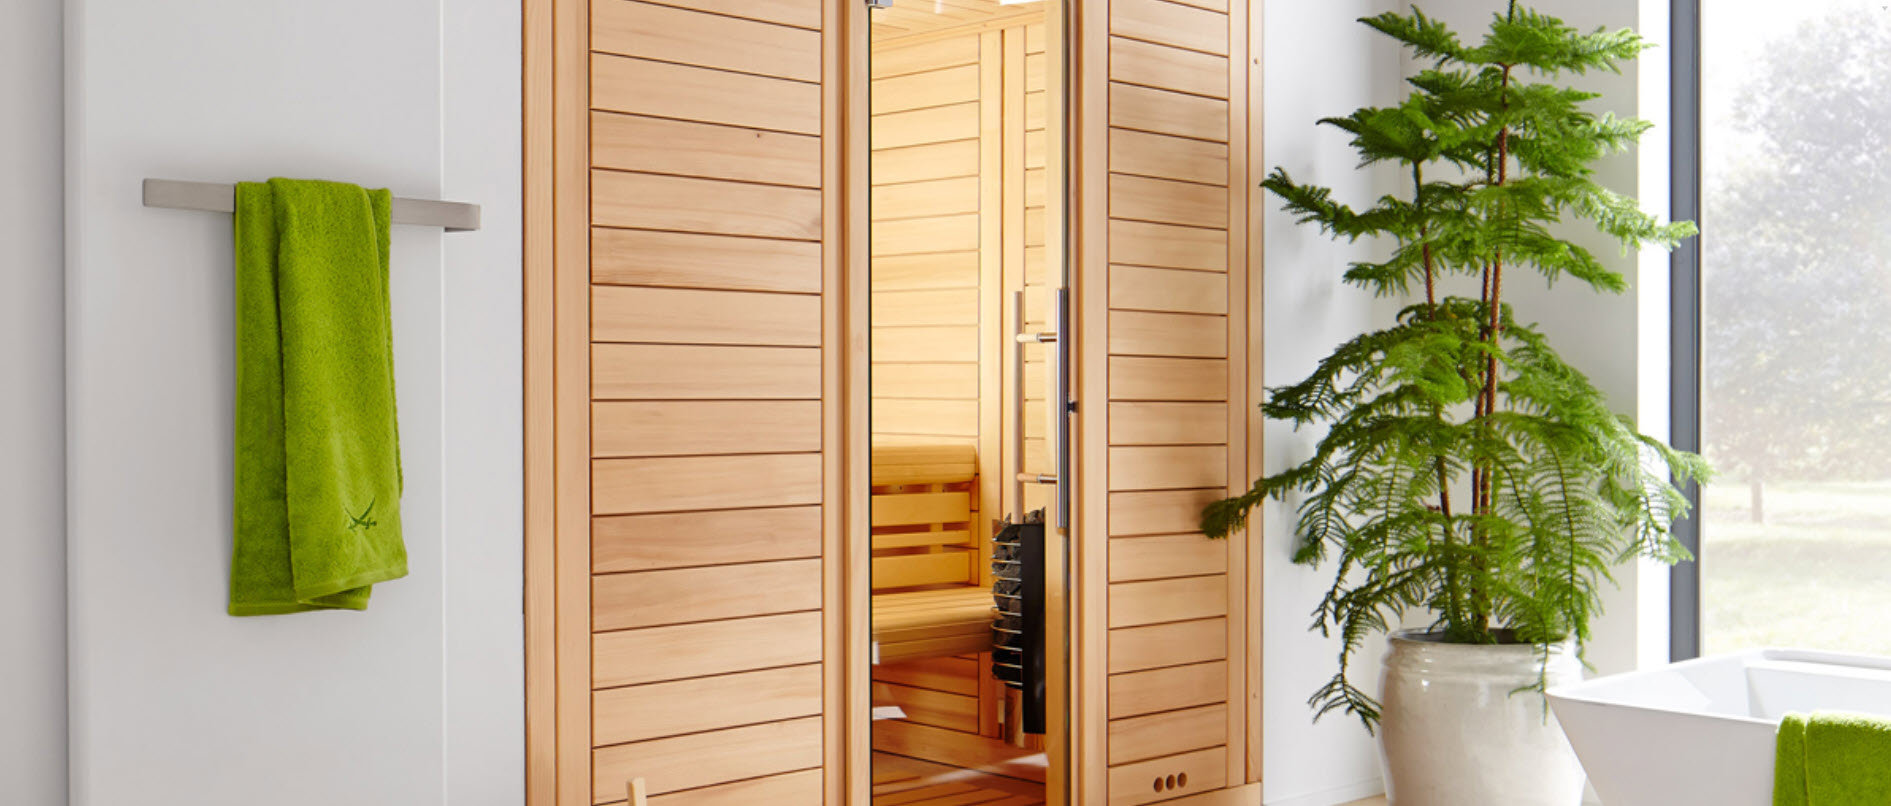 3 Smart Reasons to Install a Sauna at Home, Sauna Prices Minneapolis